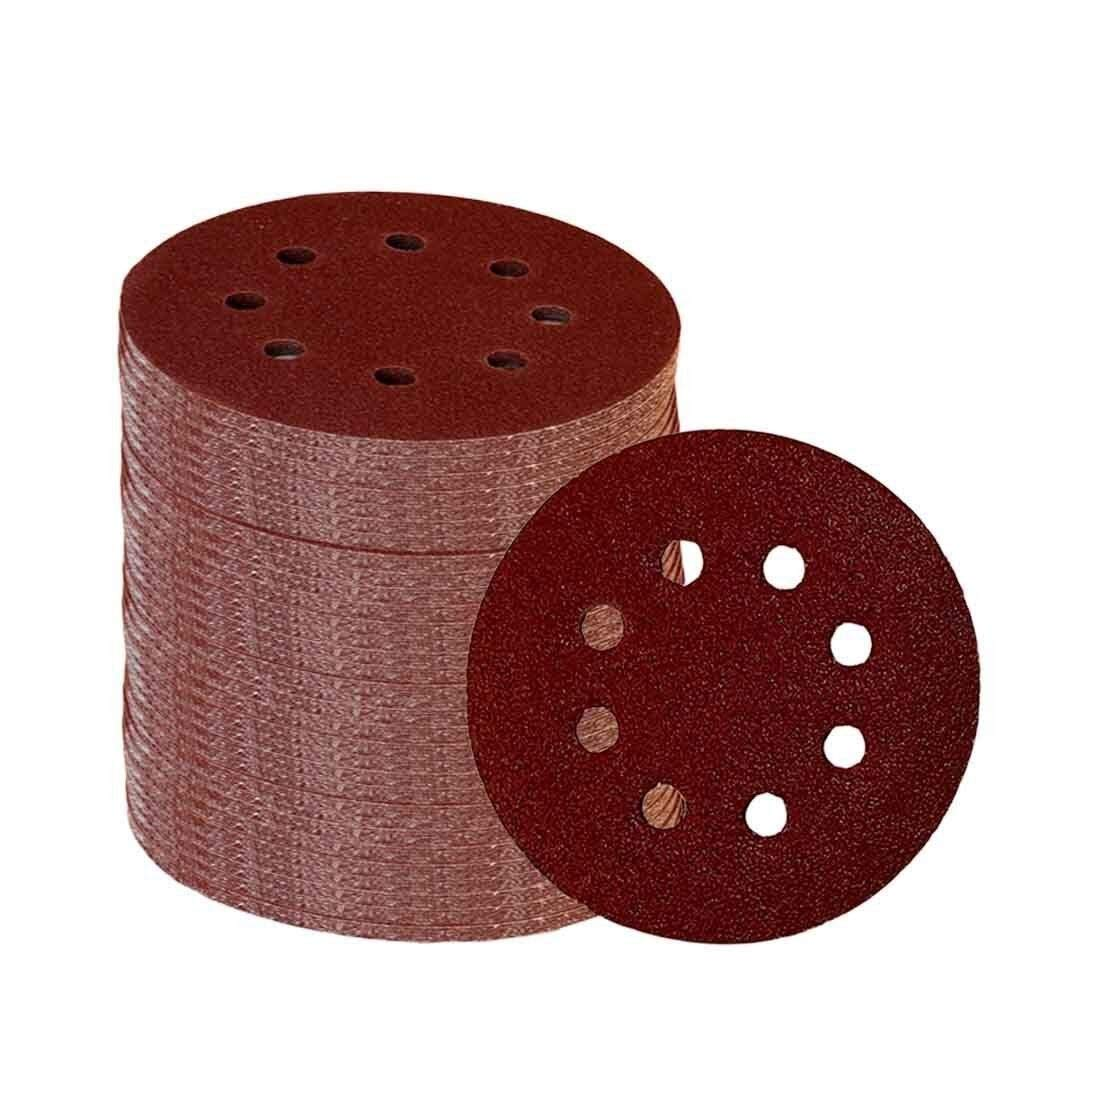 SYH01 60 Pieces 8 Holes 5 Inch Sanding Discs Hook Loop 60/100/180/240/320/400 Grit Sander Machine Sander Deglosser